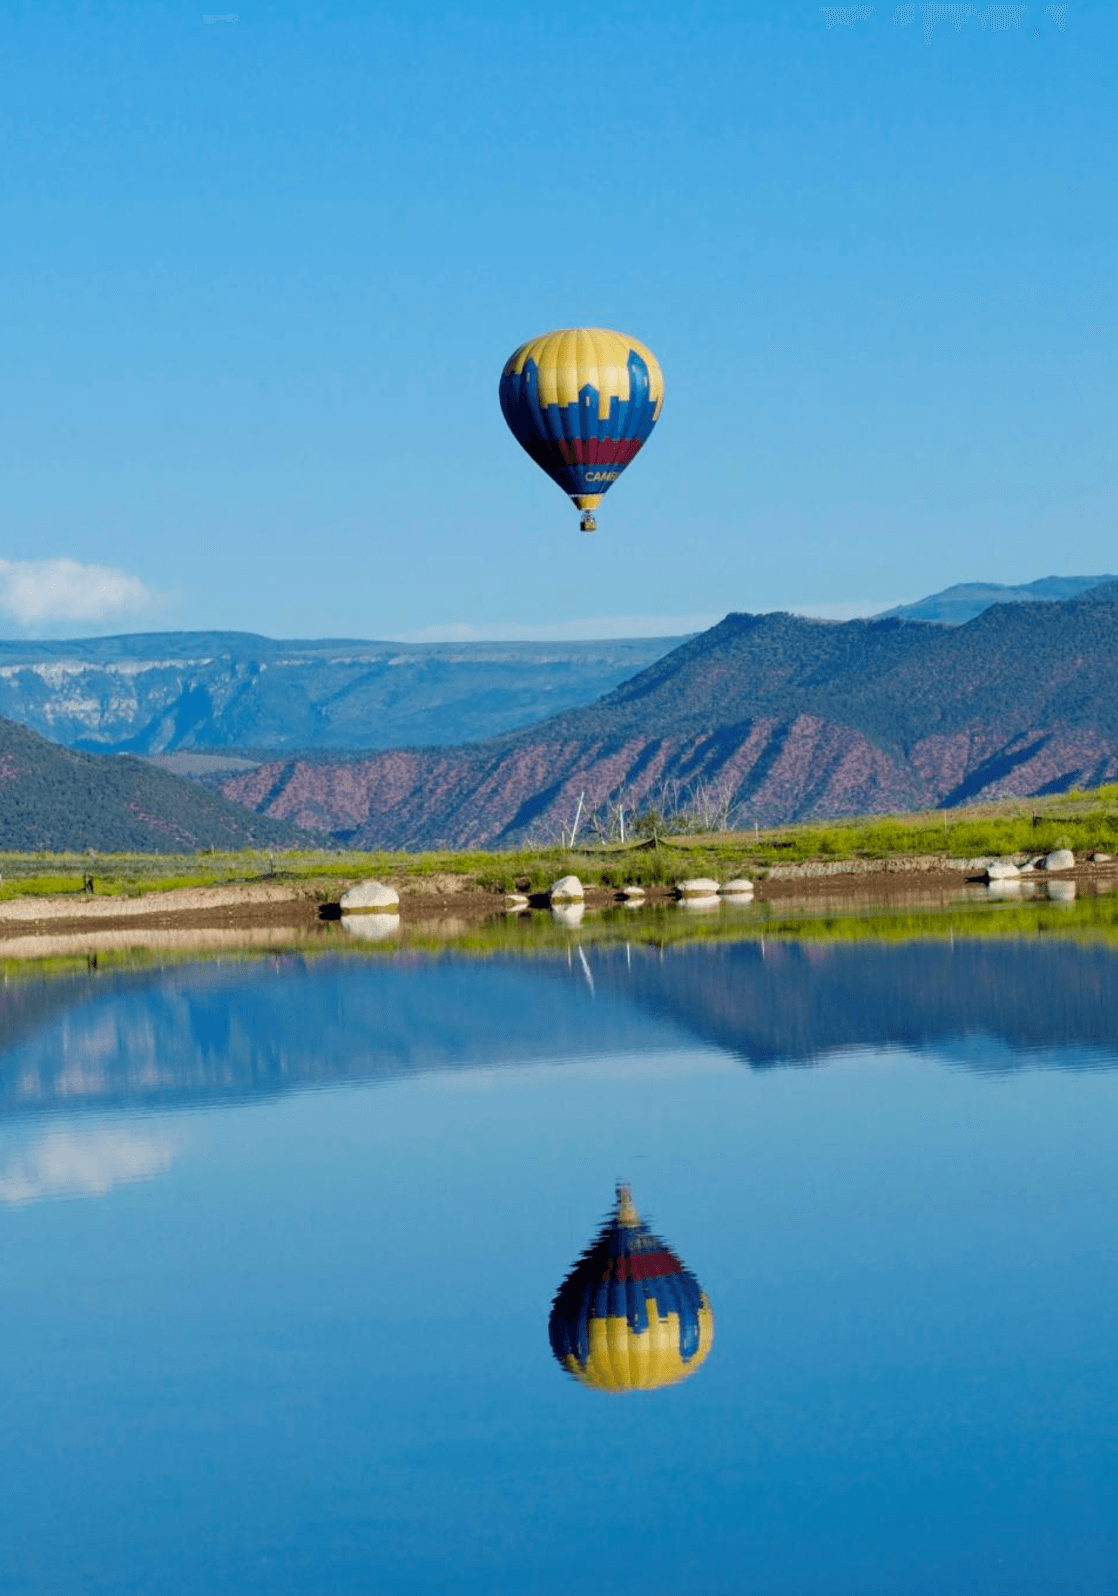 Camelot hot air balloon ride in Vail in summer